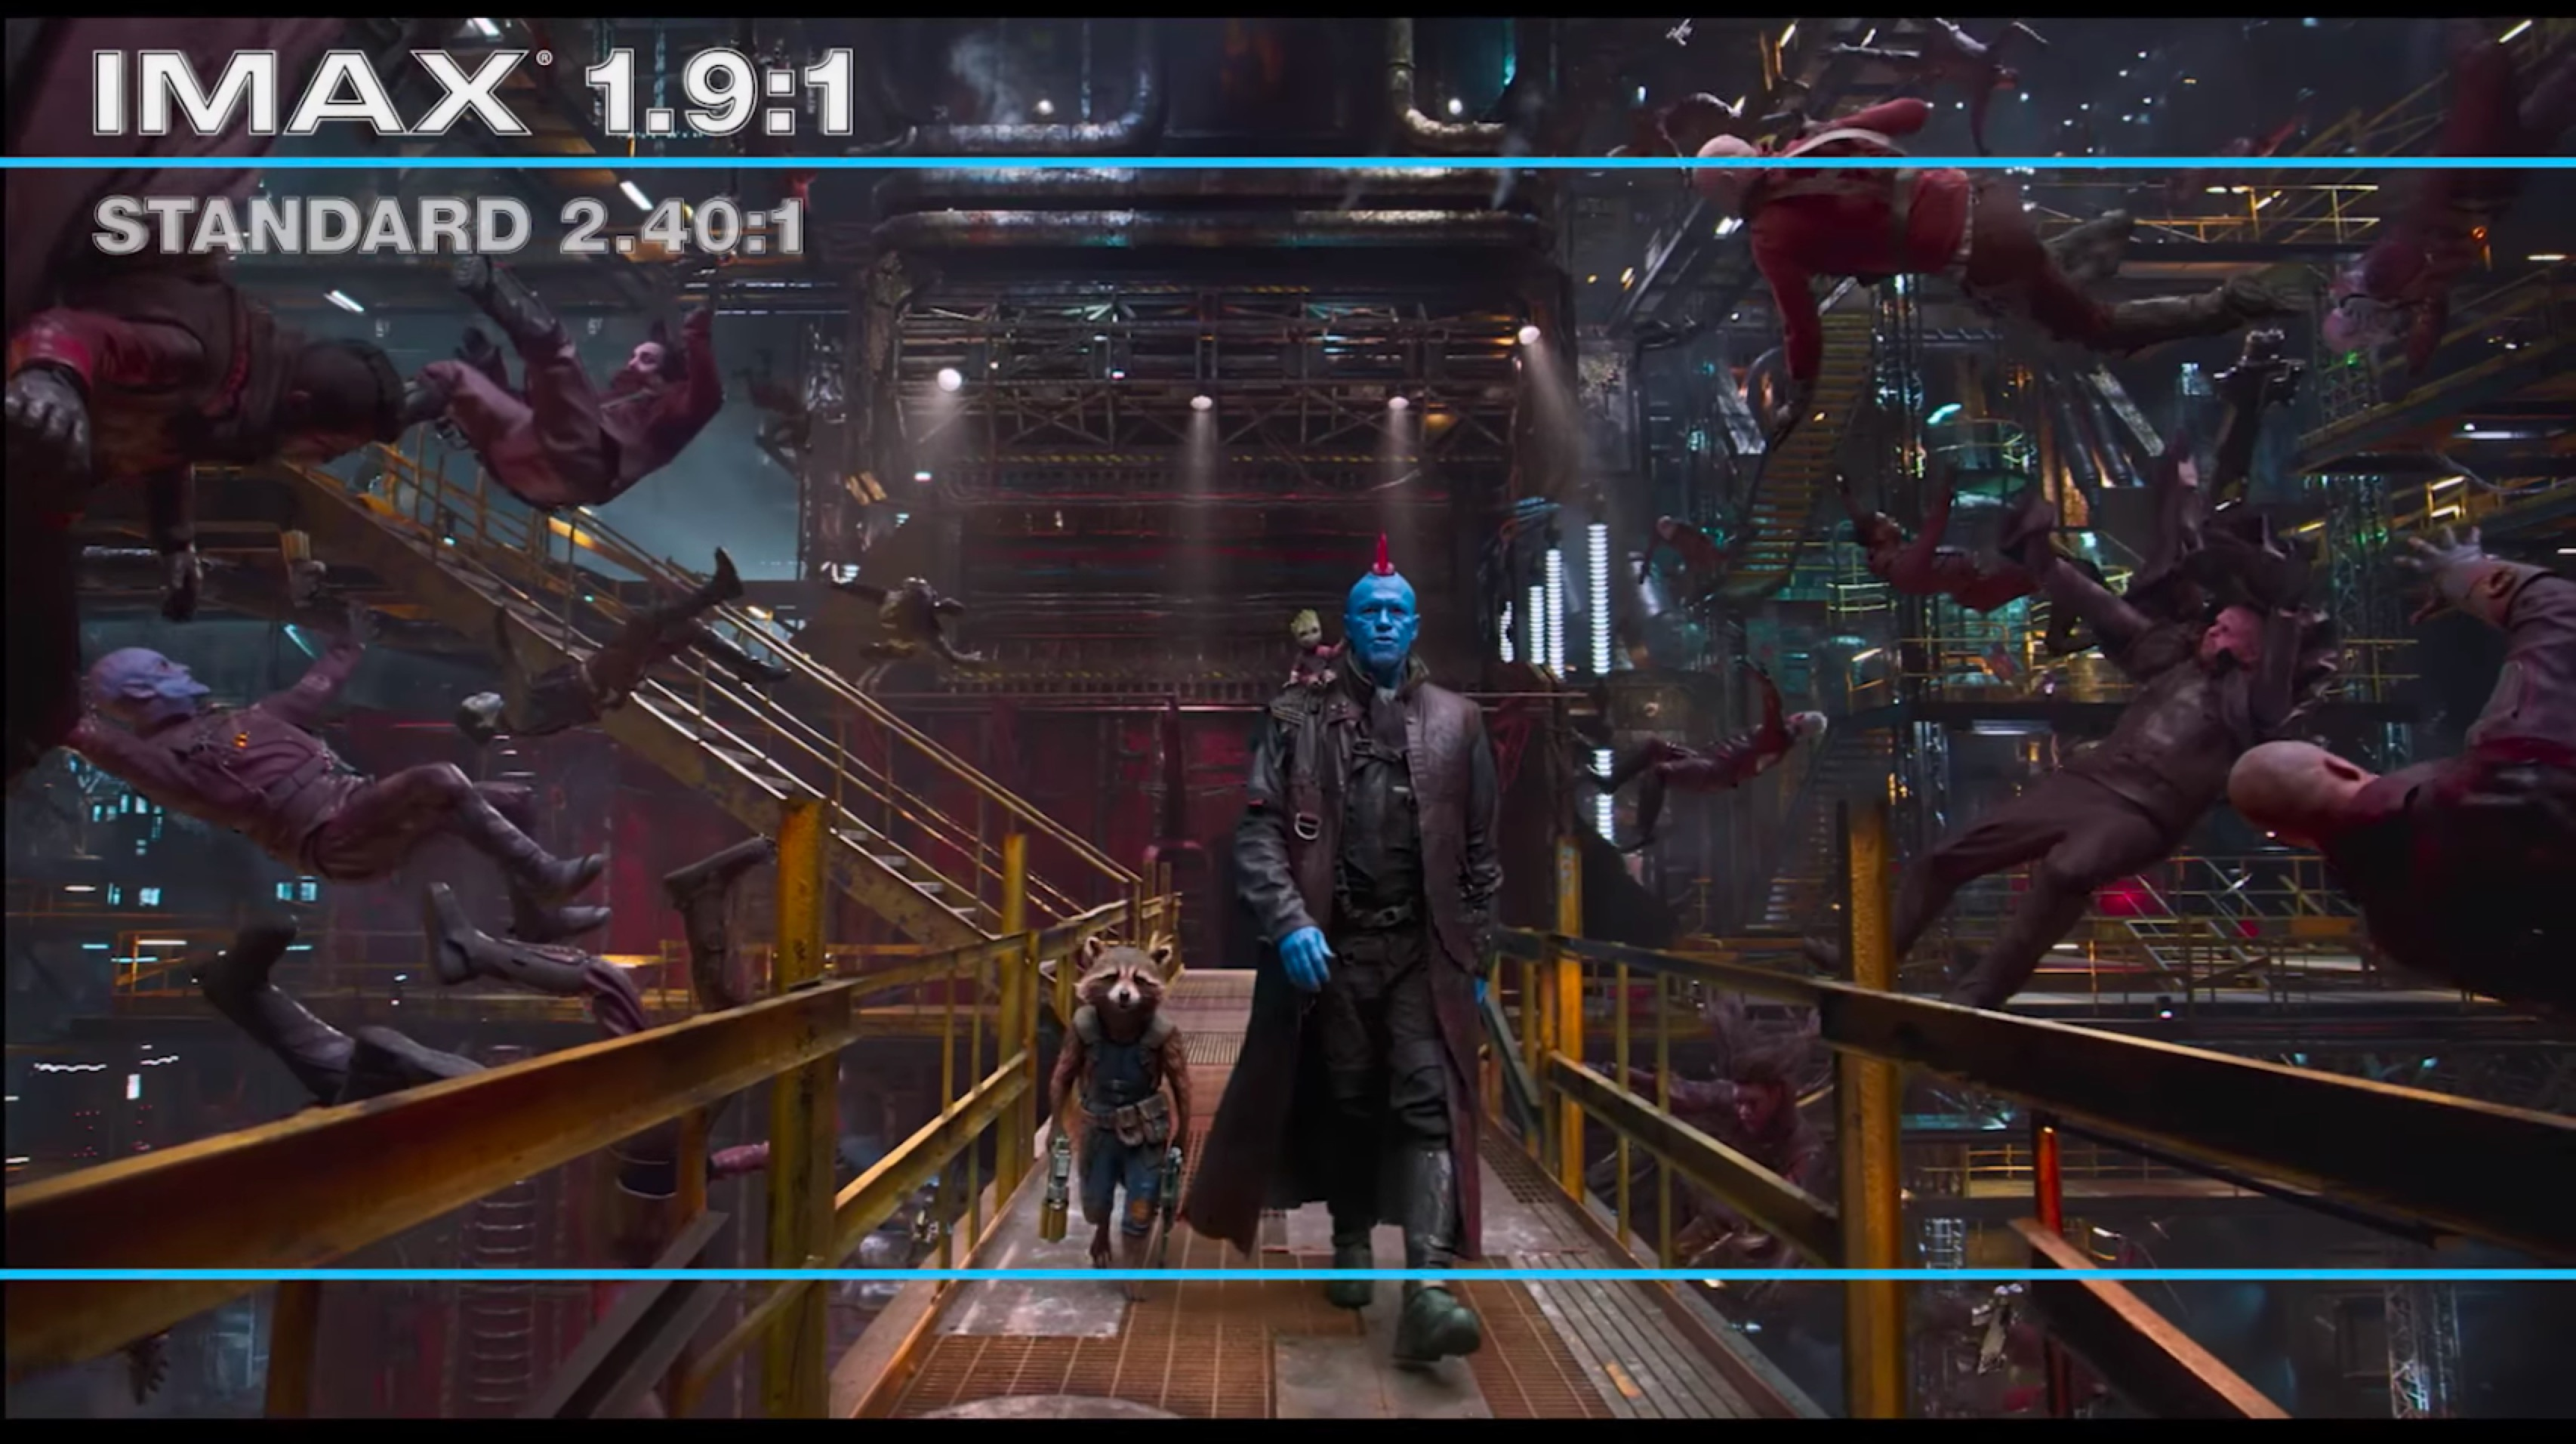 guardians of the galaxy 2 imax ratio difference